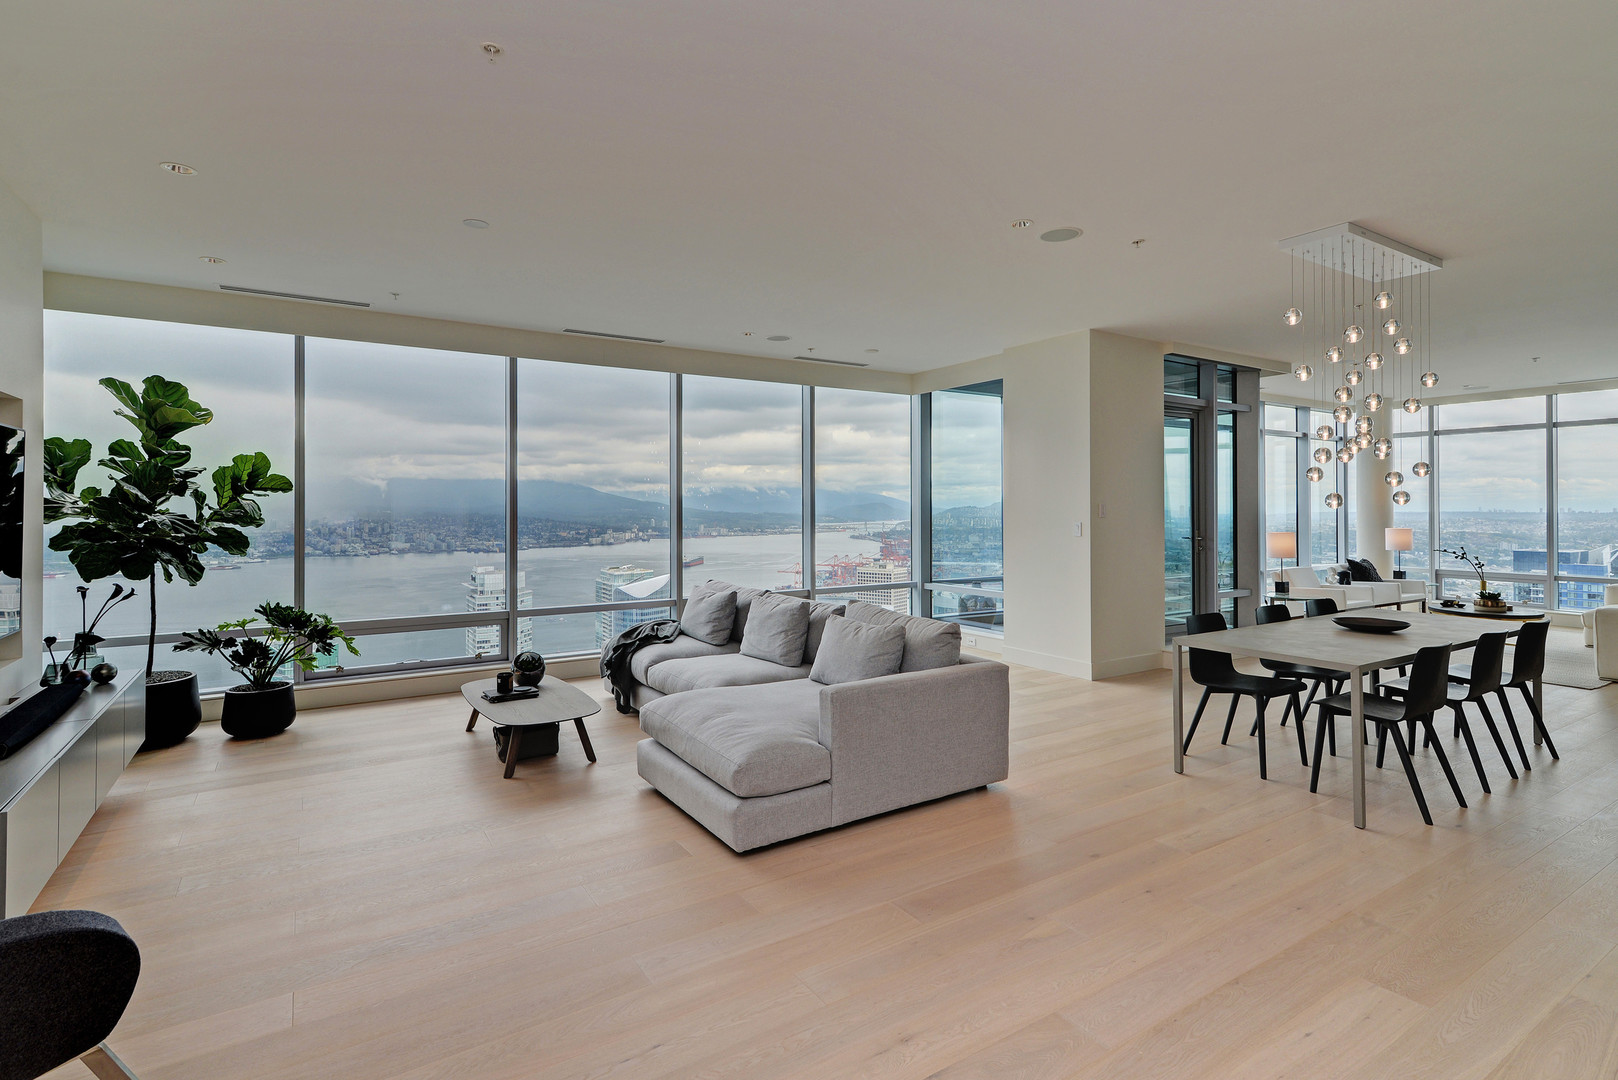 FULLY FURNISHED TWO BEDROOM PROPERTY IN THE PRIVATE ACCESS ESTATE AT THE LUXURIOUS SHANGRI-LA VANCOUVER